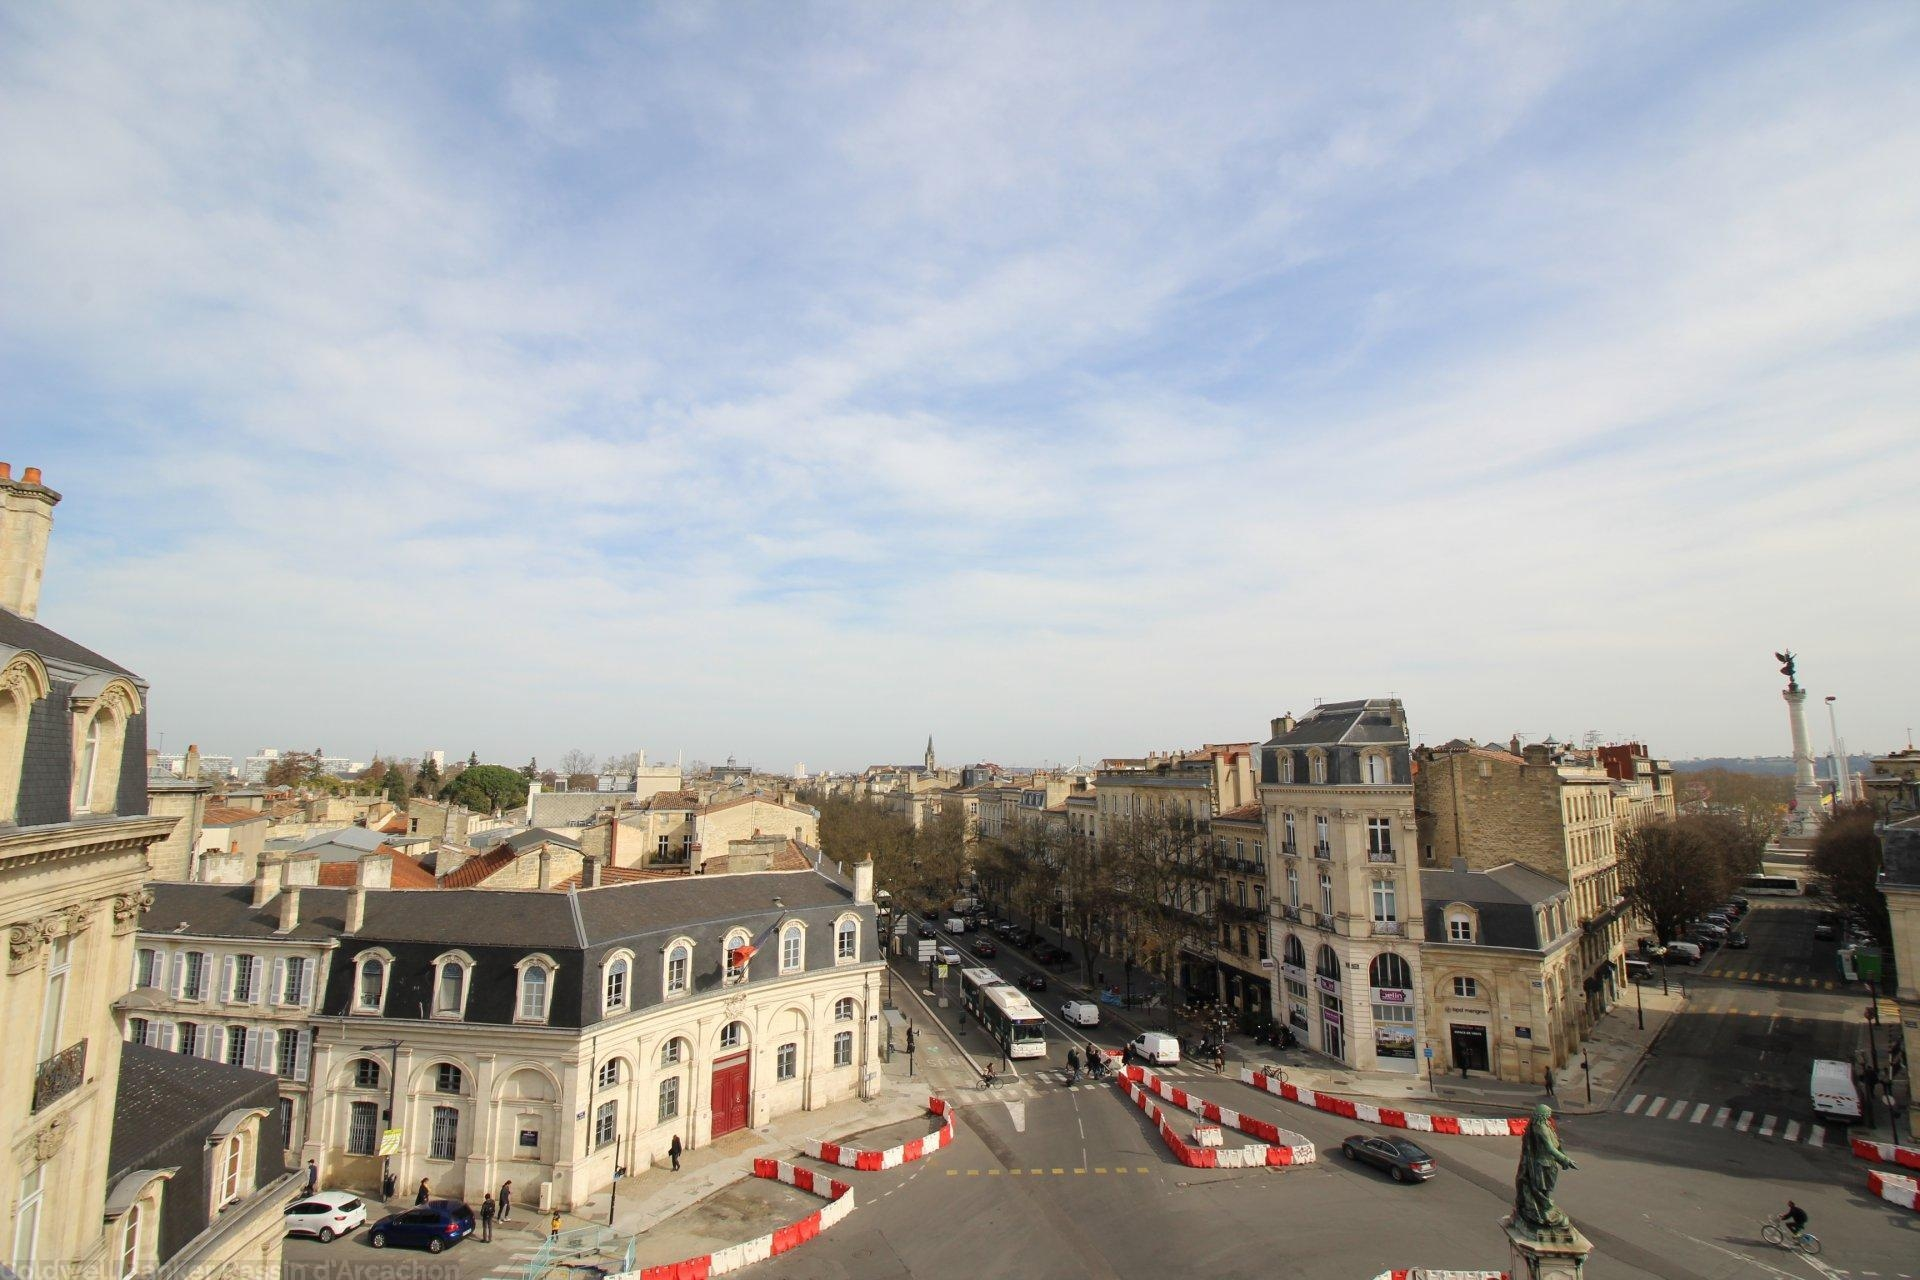 Vente Appartement Bordeaux Hyper Centre Triangle D 39 Or